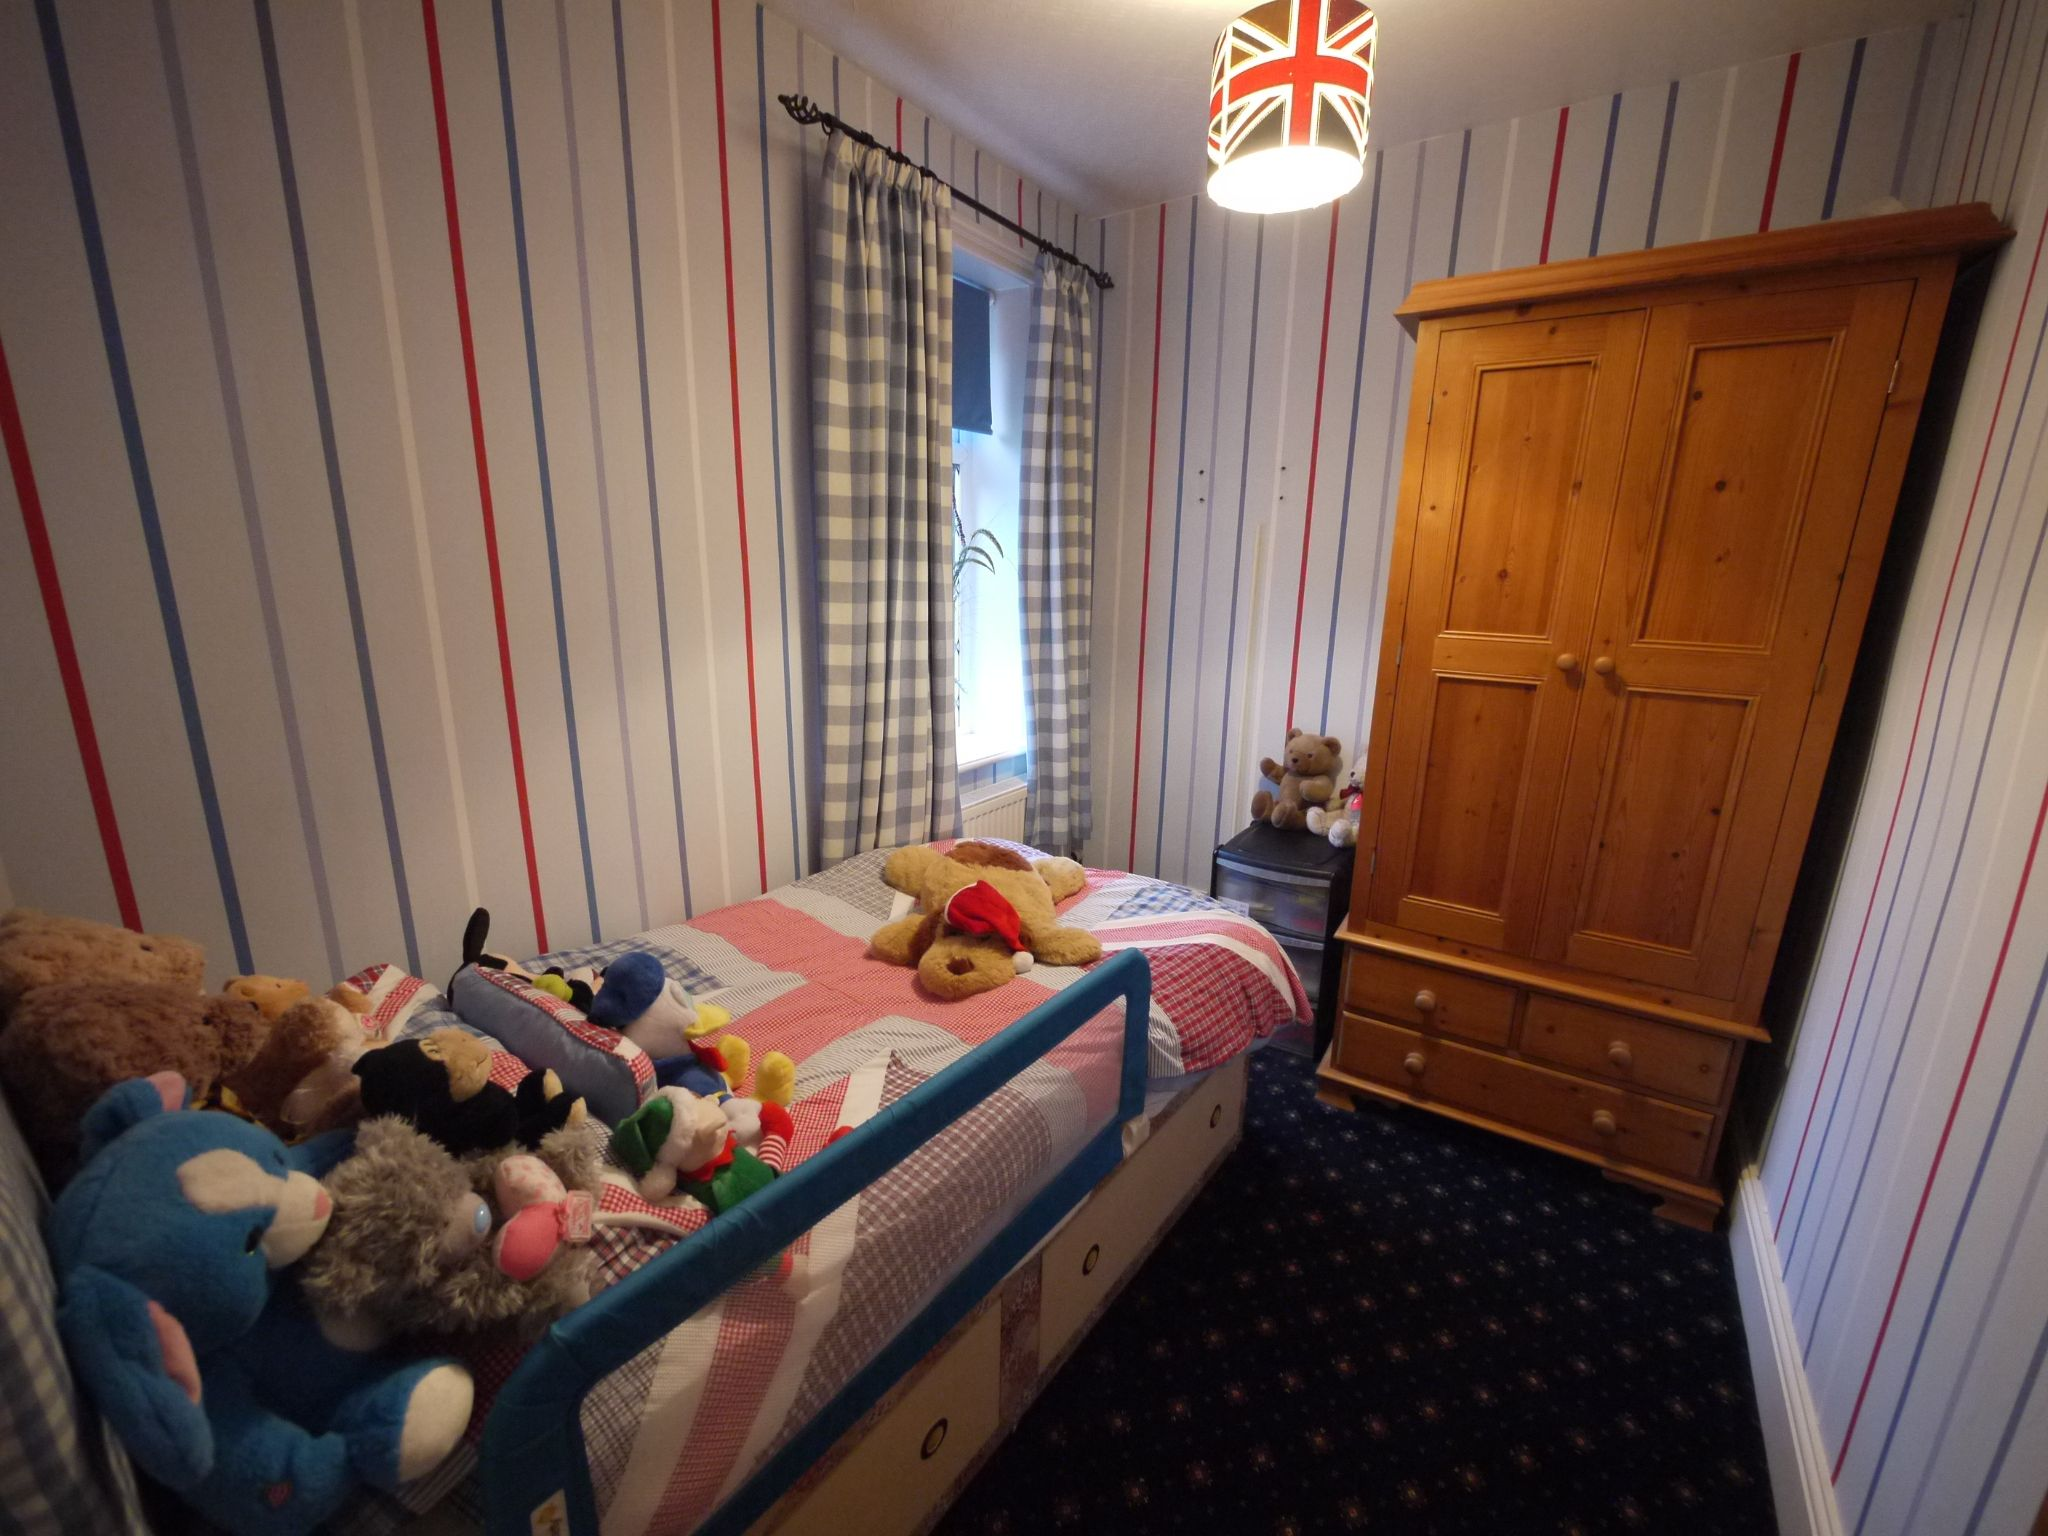 3 bedroom semi-detached house For Sale in Calderdale - Photograph 11.